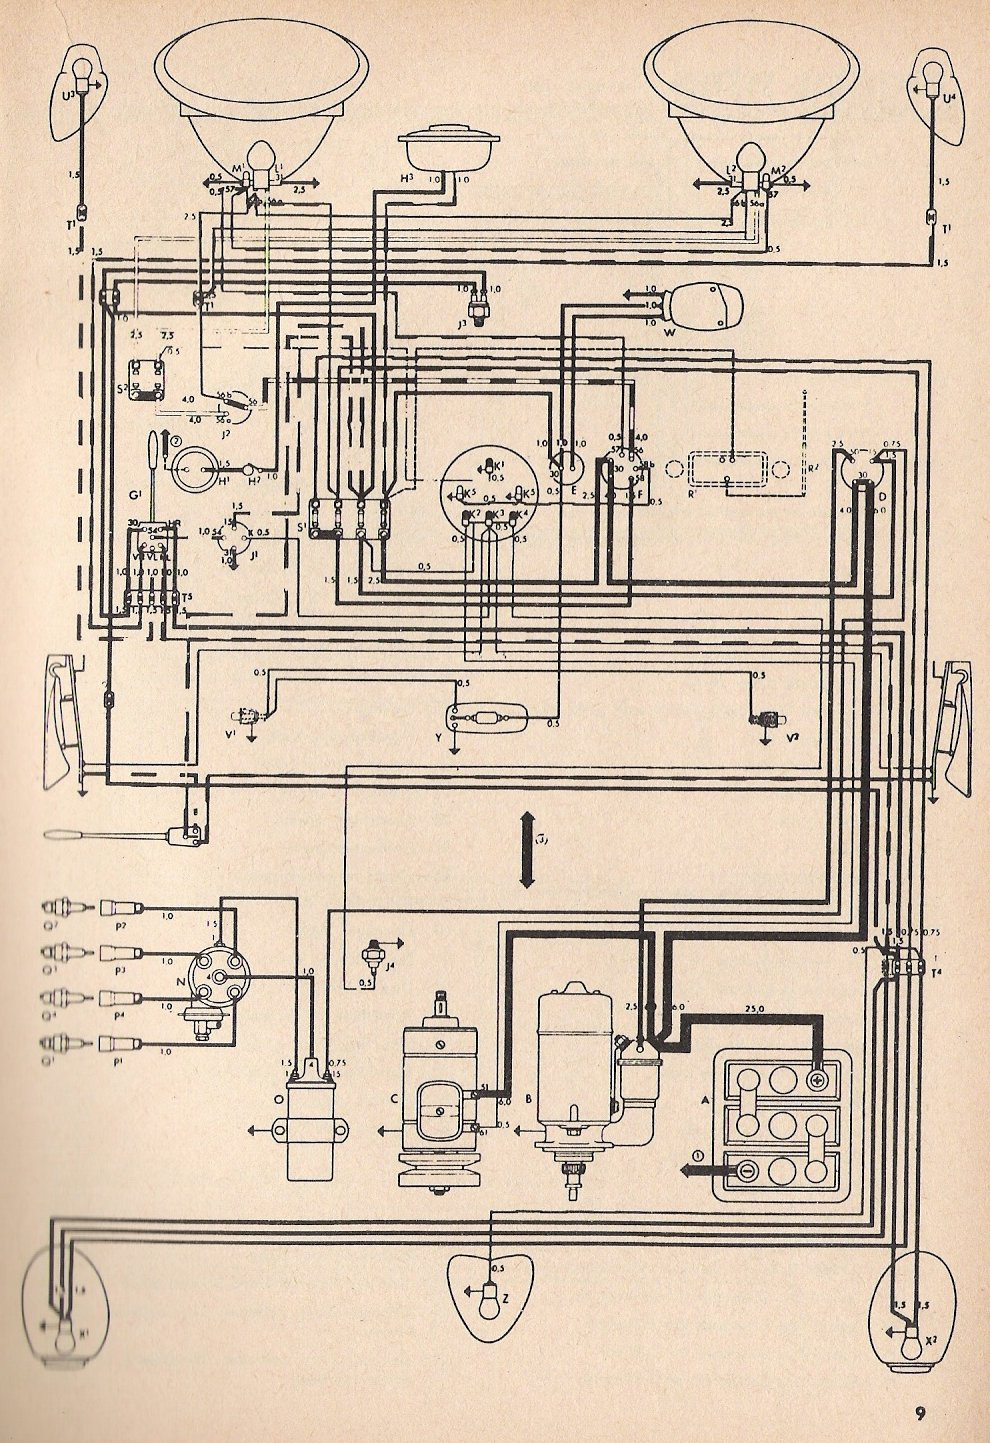 Type 1 Wiring Diagrams Wire Harness Schematic